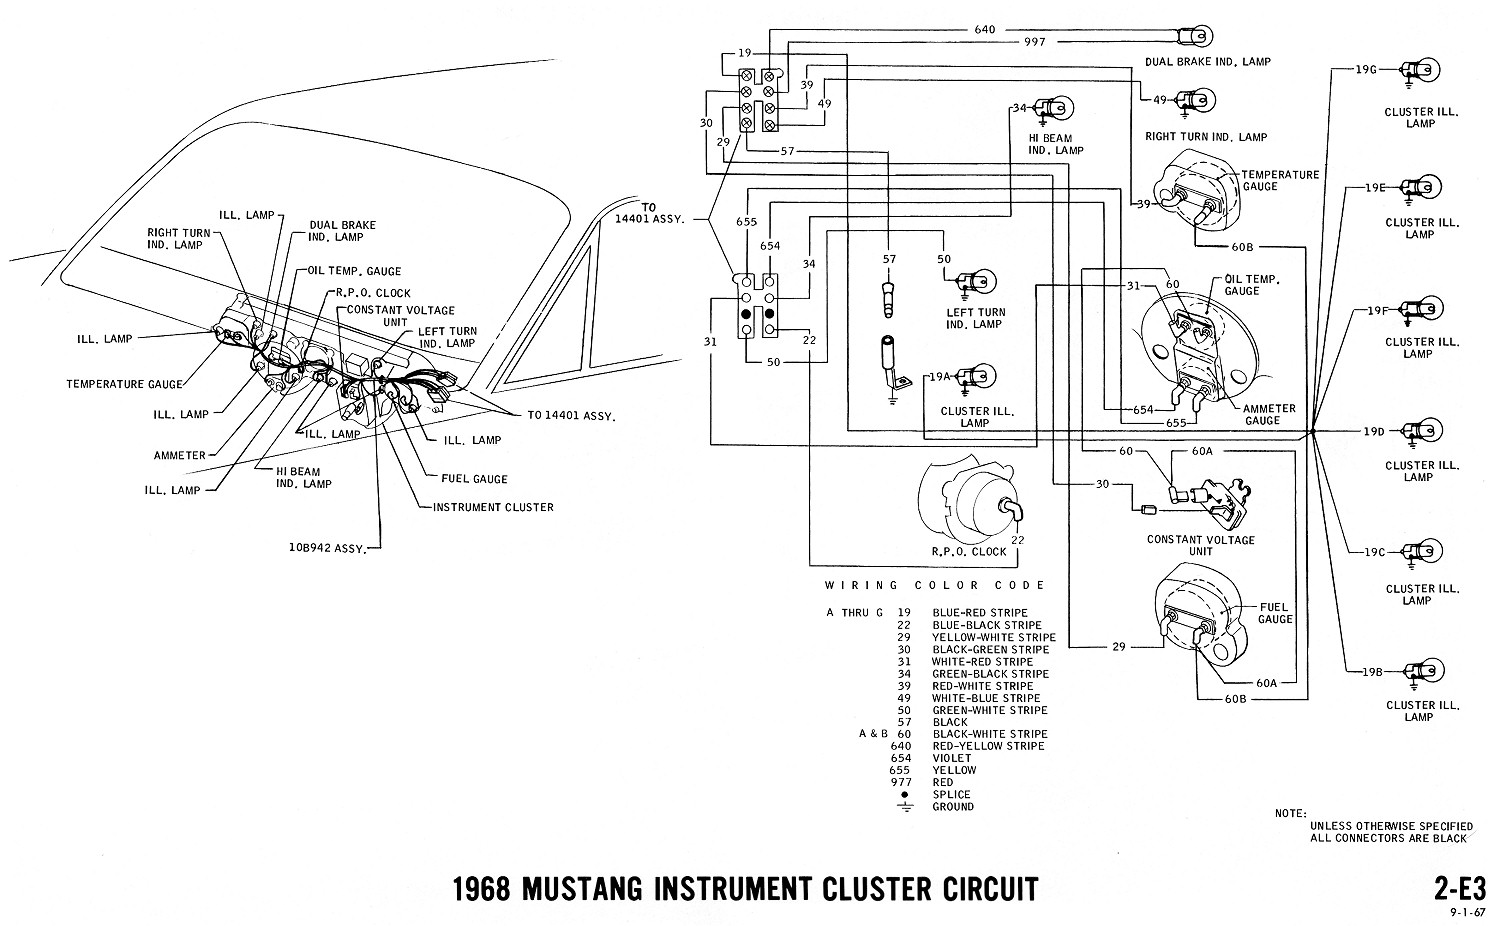 65 mustang ignition switch wiring diagram 1966 mustang 1976 280Z Wiring Diagram 1968 mustang wiring diagram instruments